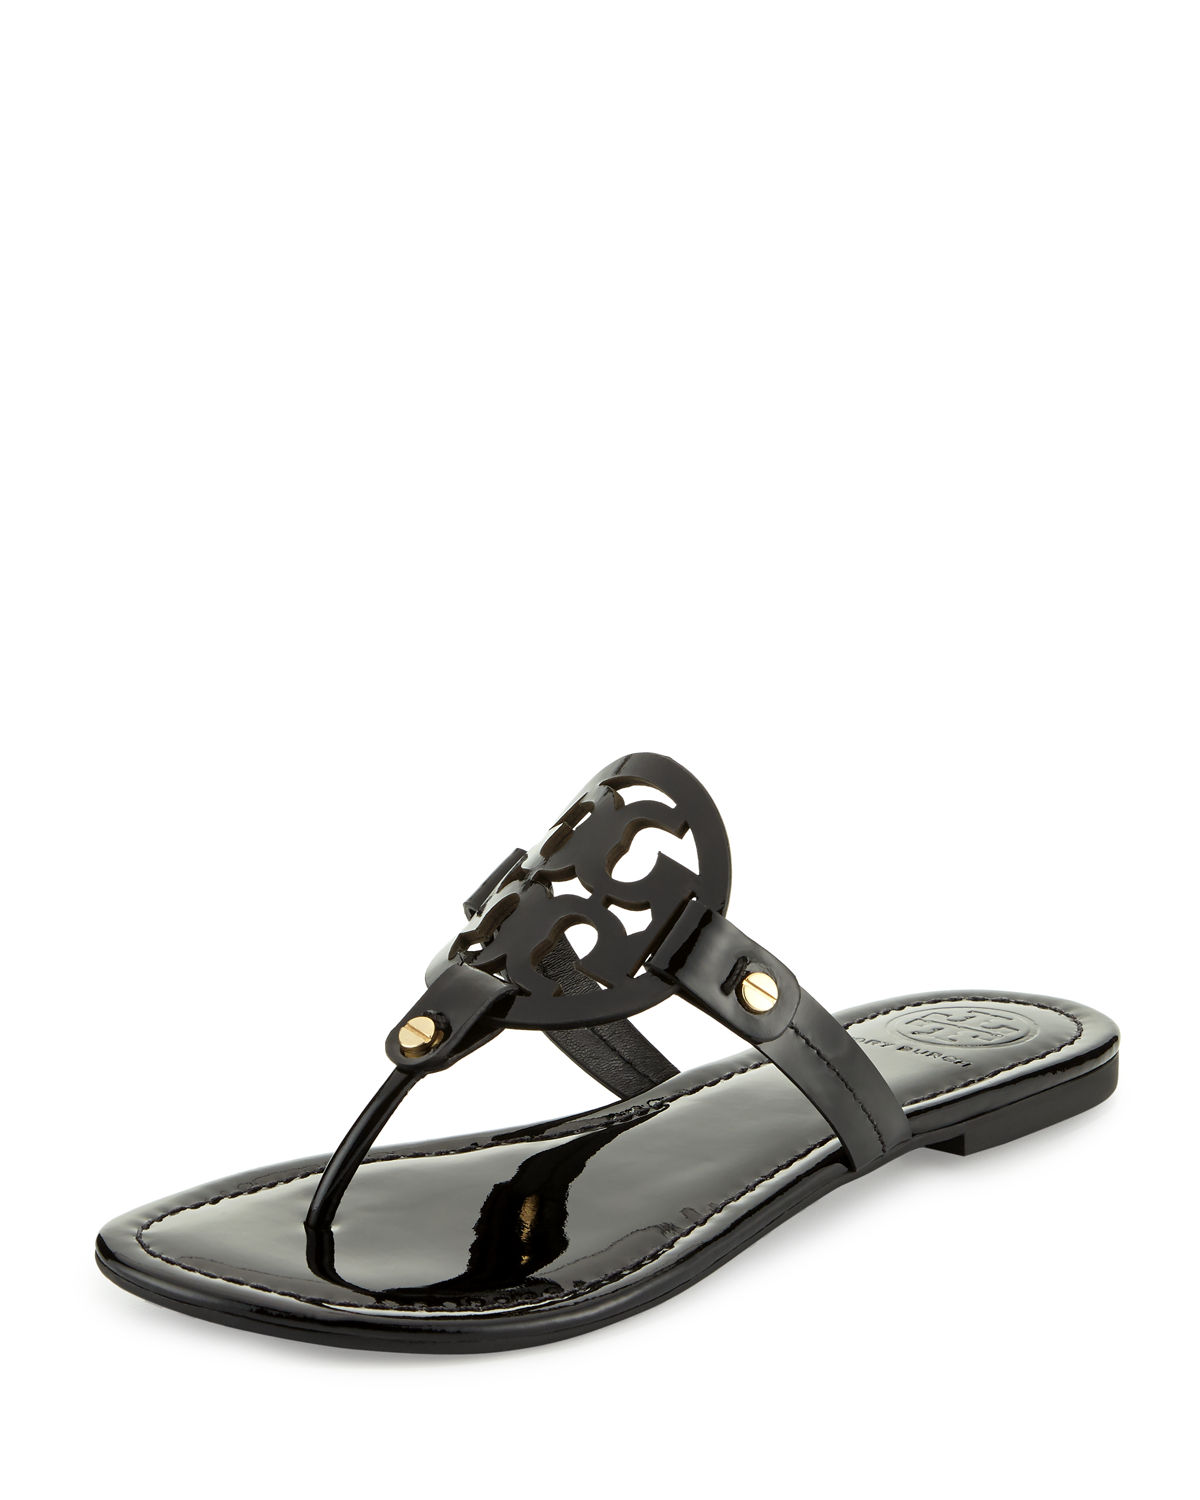 cacc06155b Tory Burch Miller Medallion Patent Leather Flat Thong | Neiman Marcus